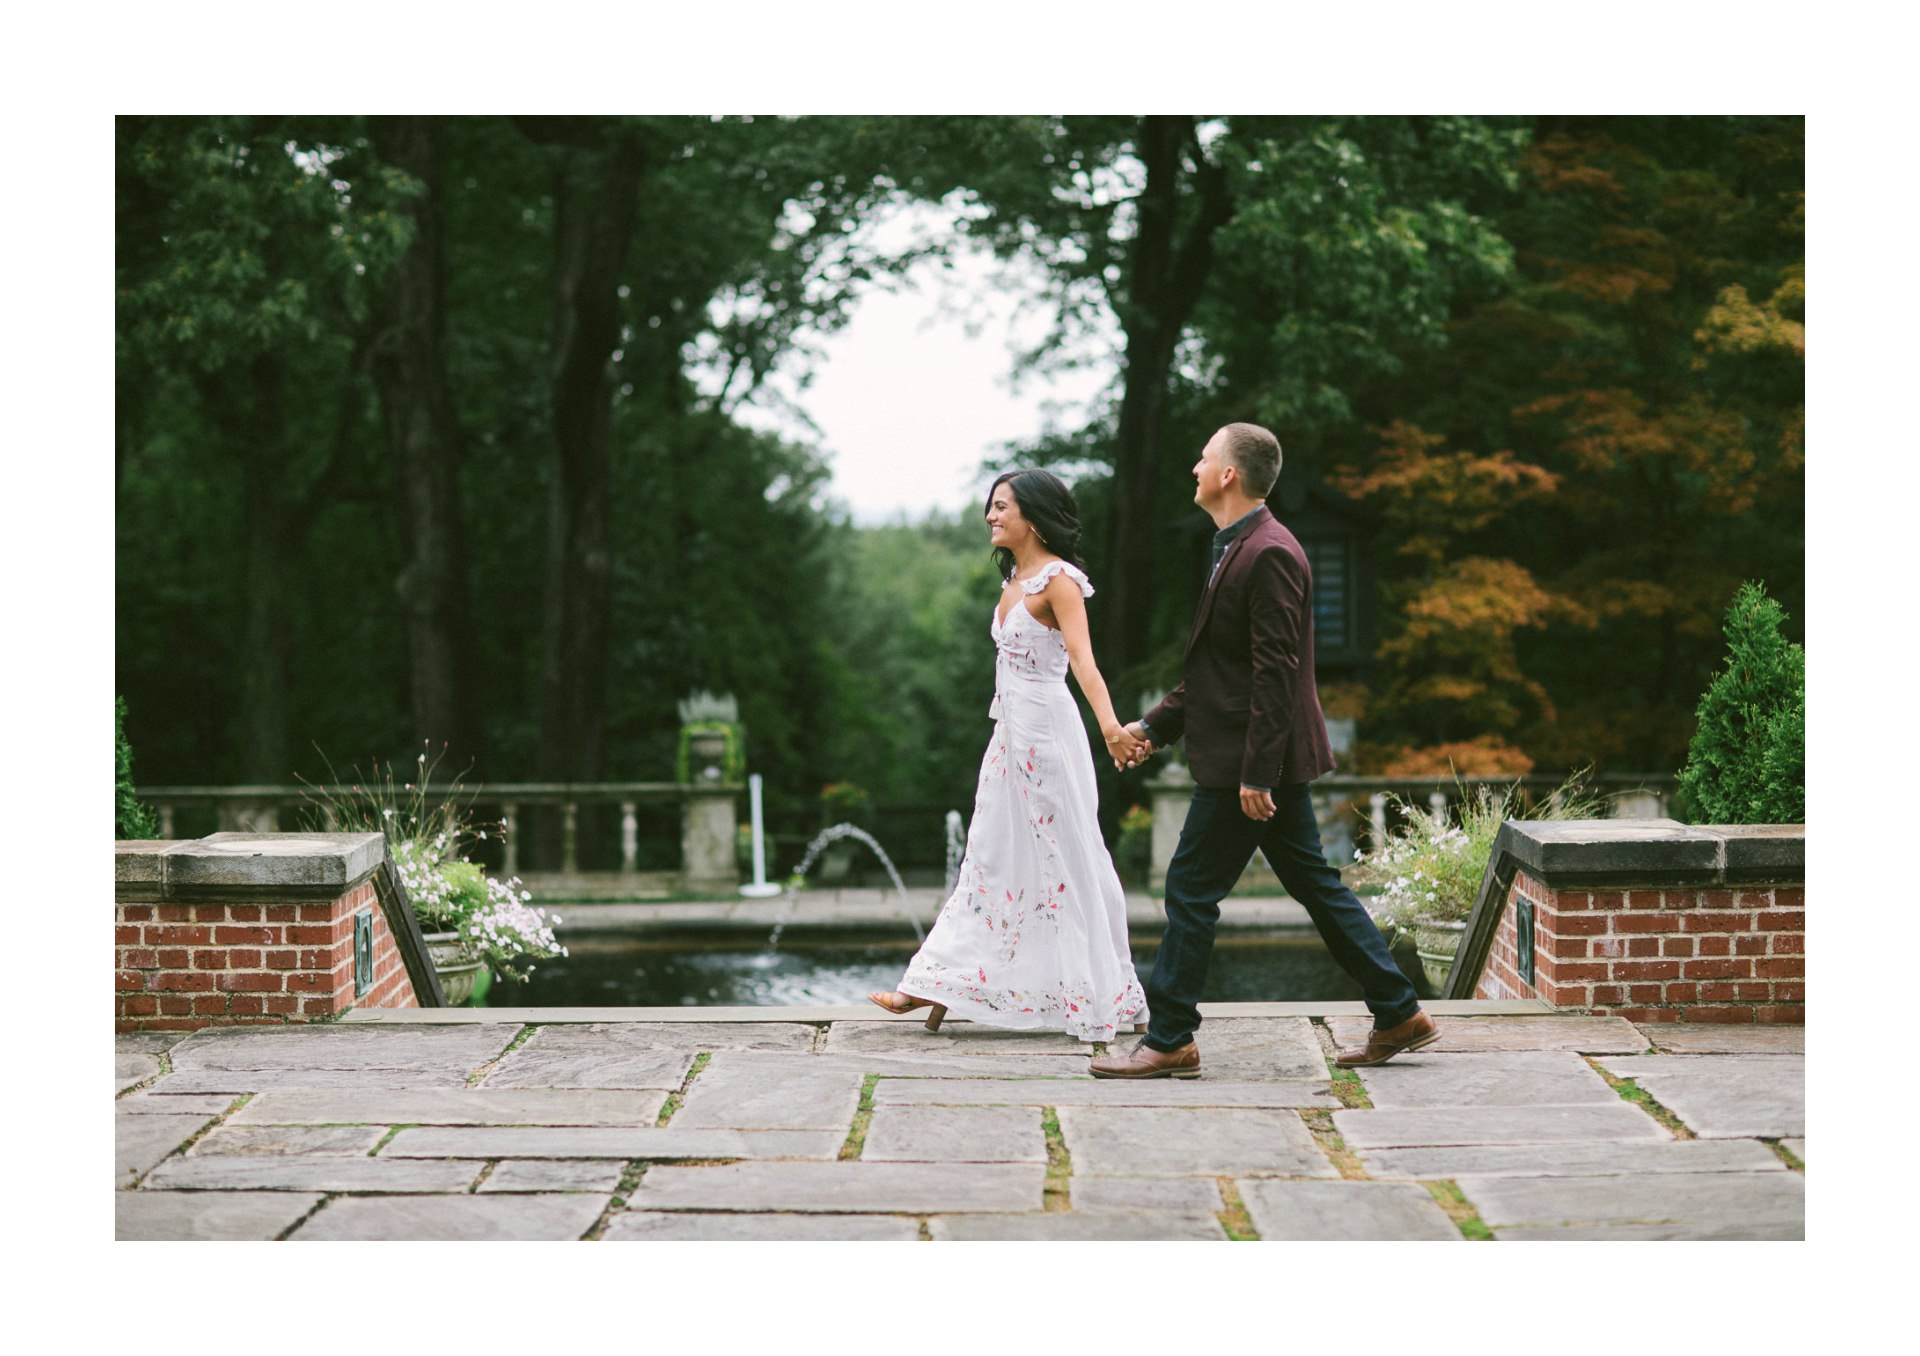 Stan Hywet Wedding Photographer 8.jpg